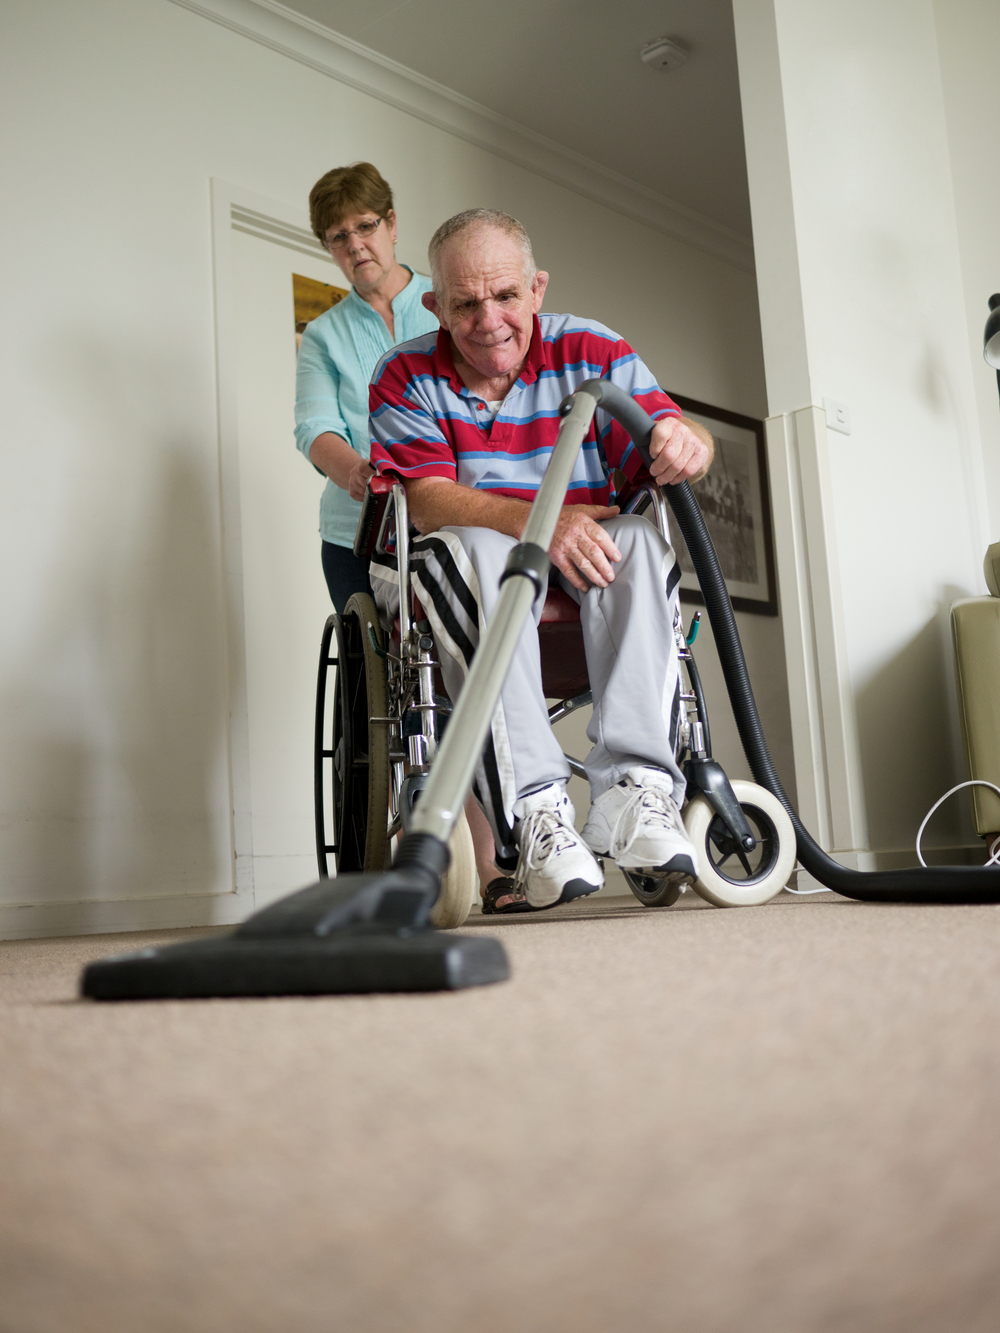 sixty-six year old man with a disability vacuuming.jpg